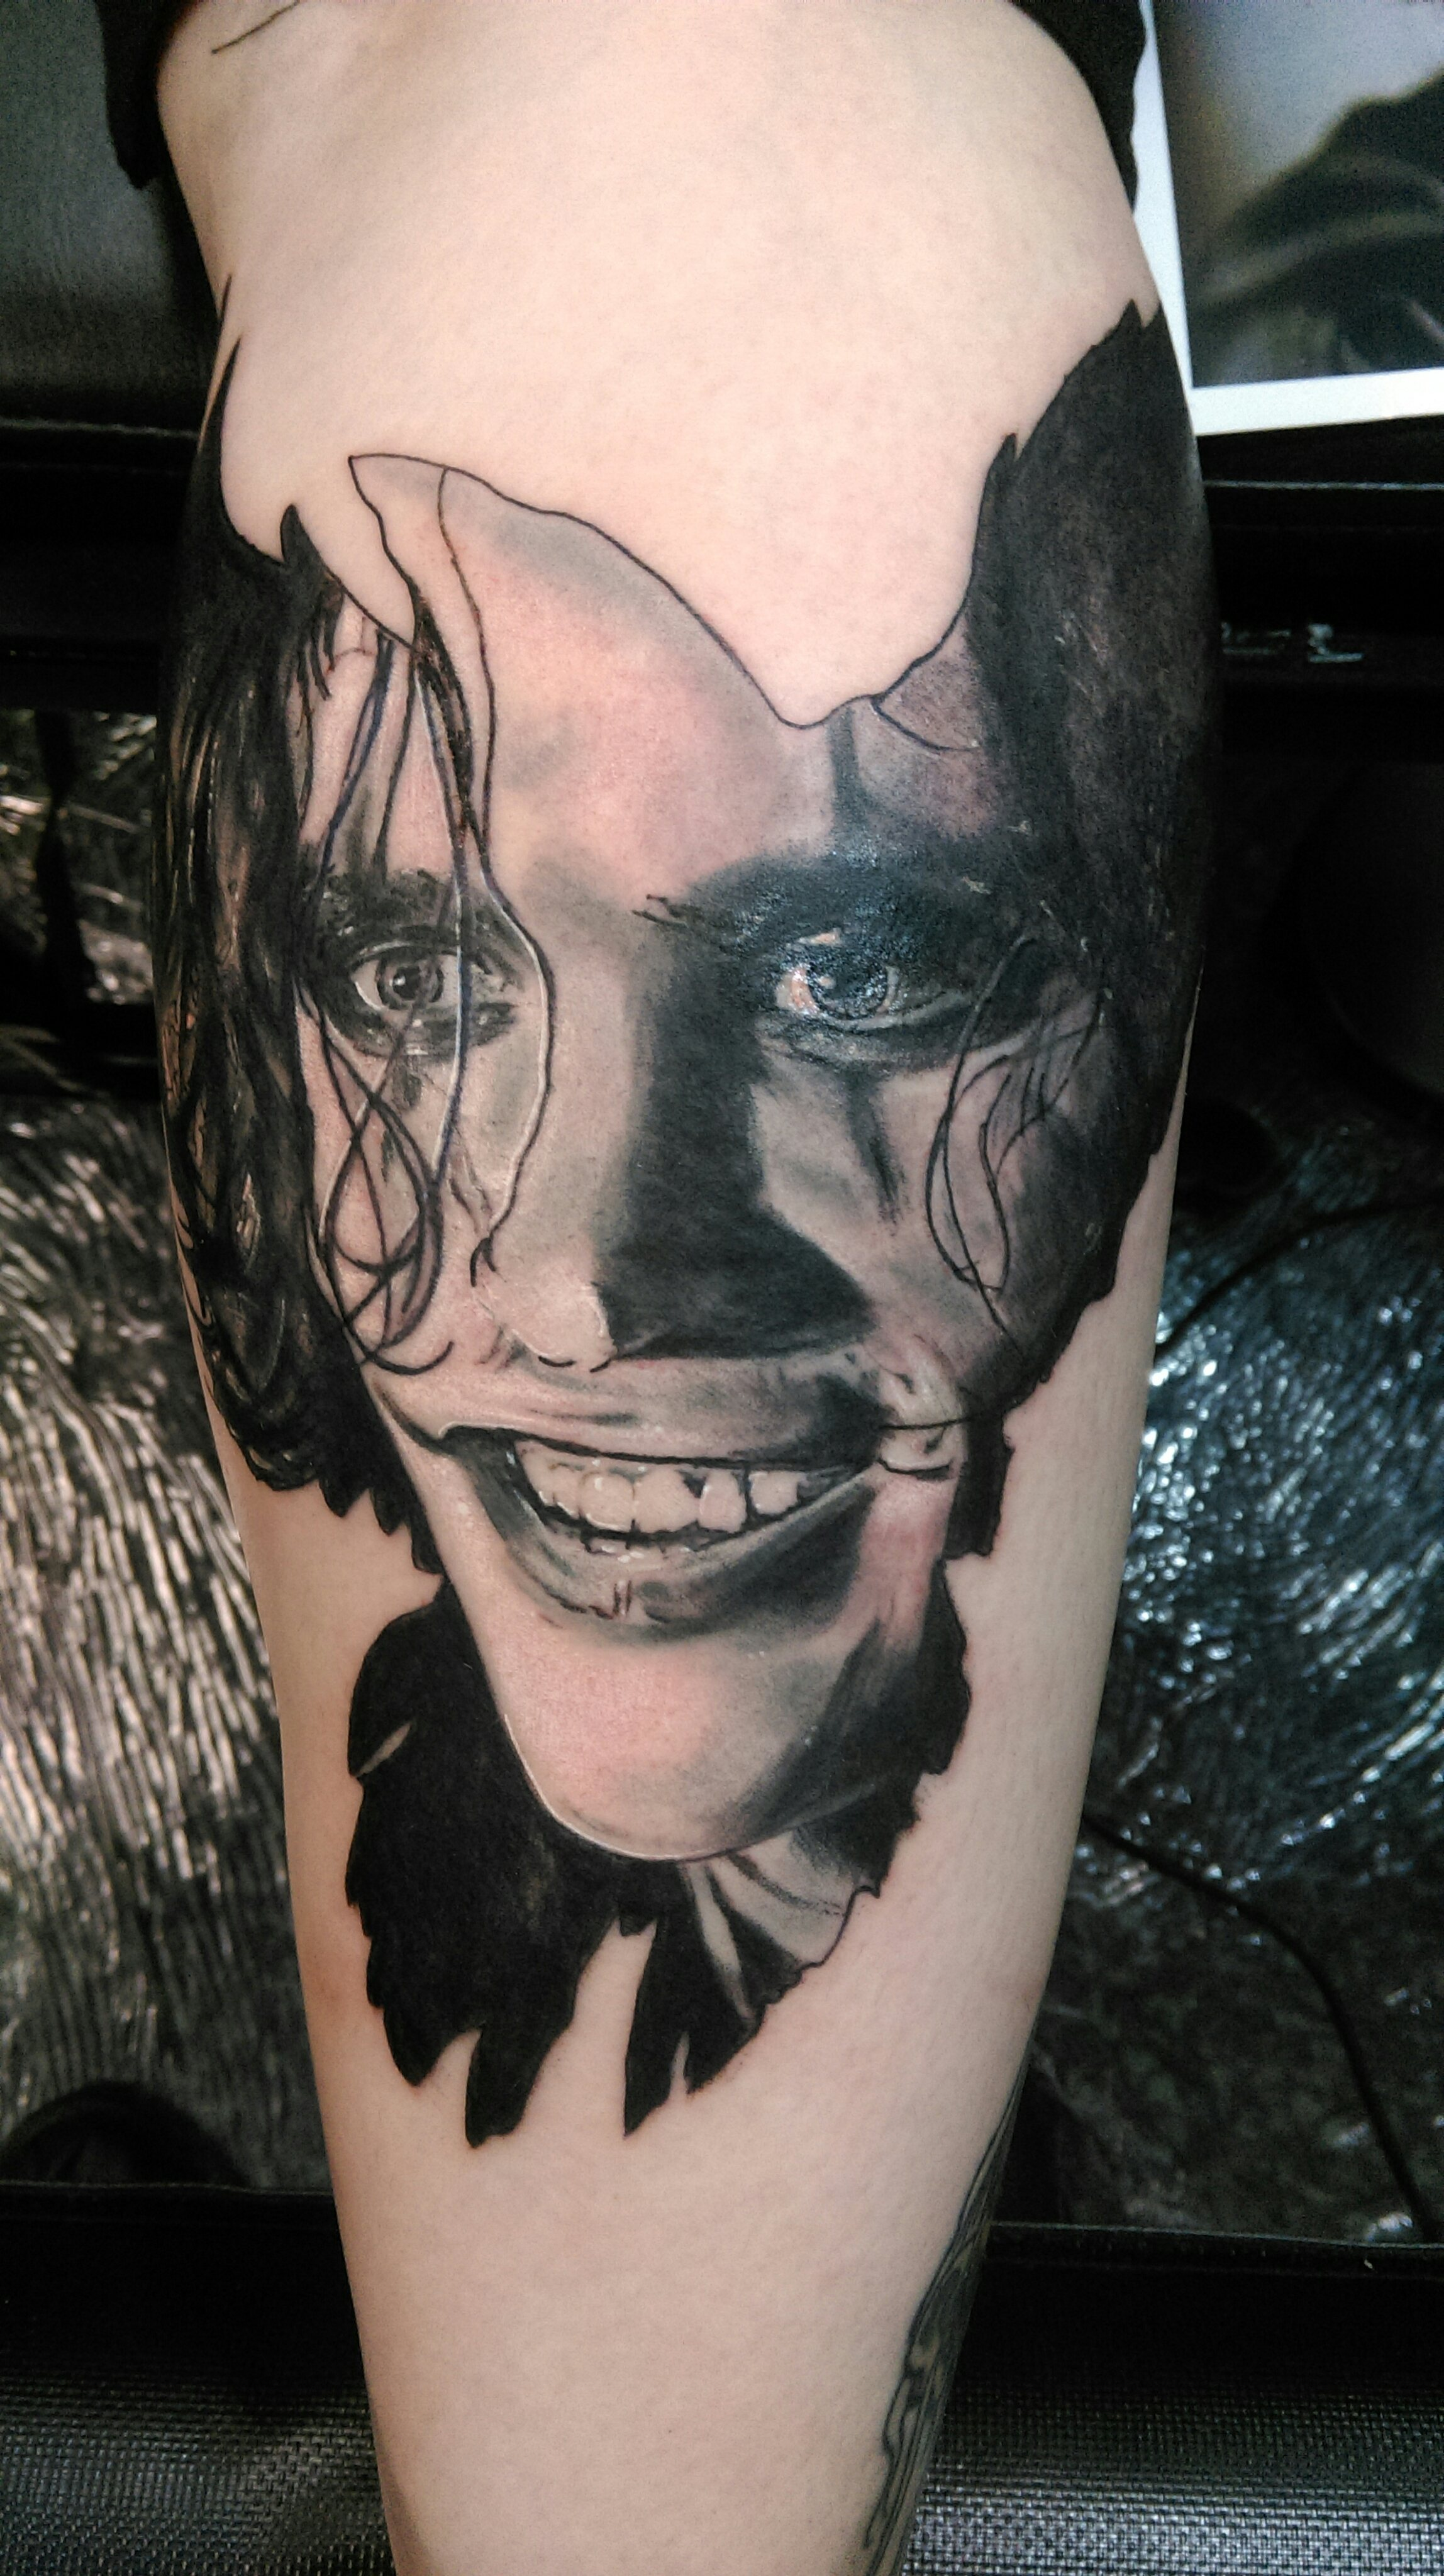 Brandon Lee/The Crow